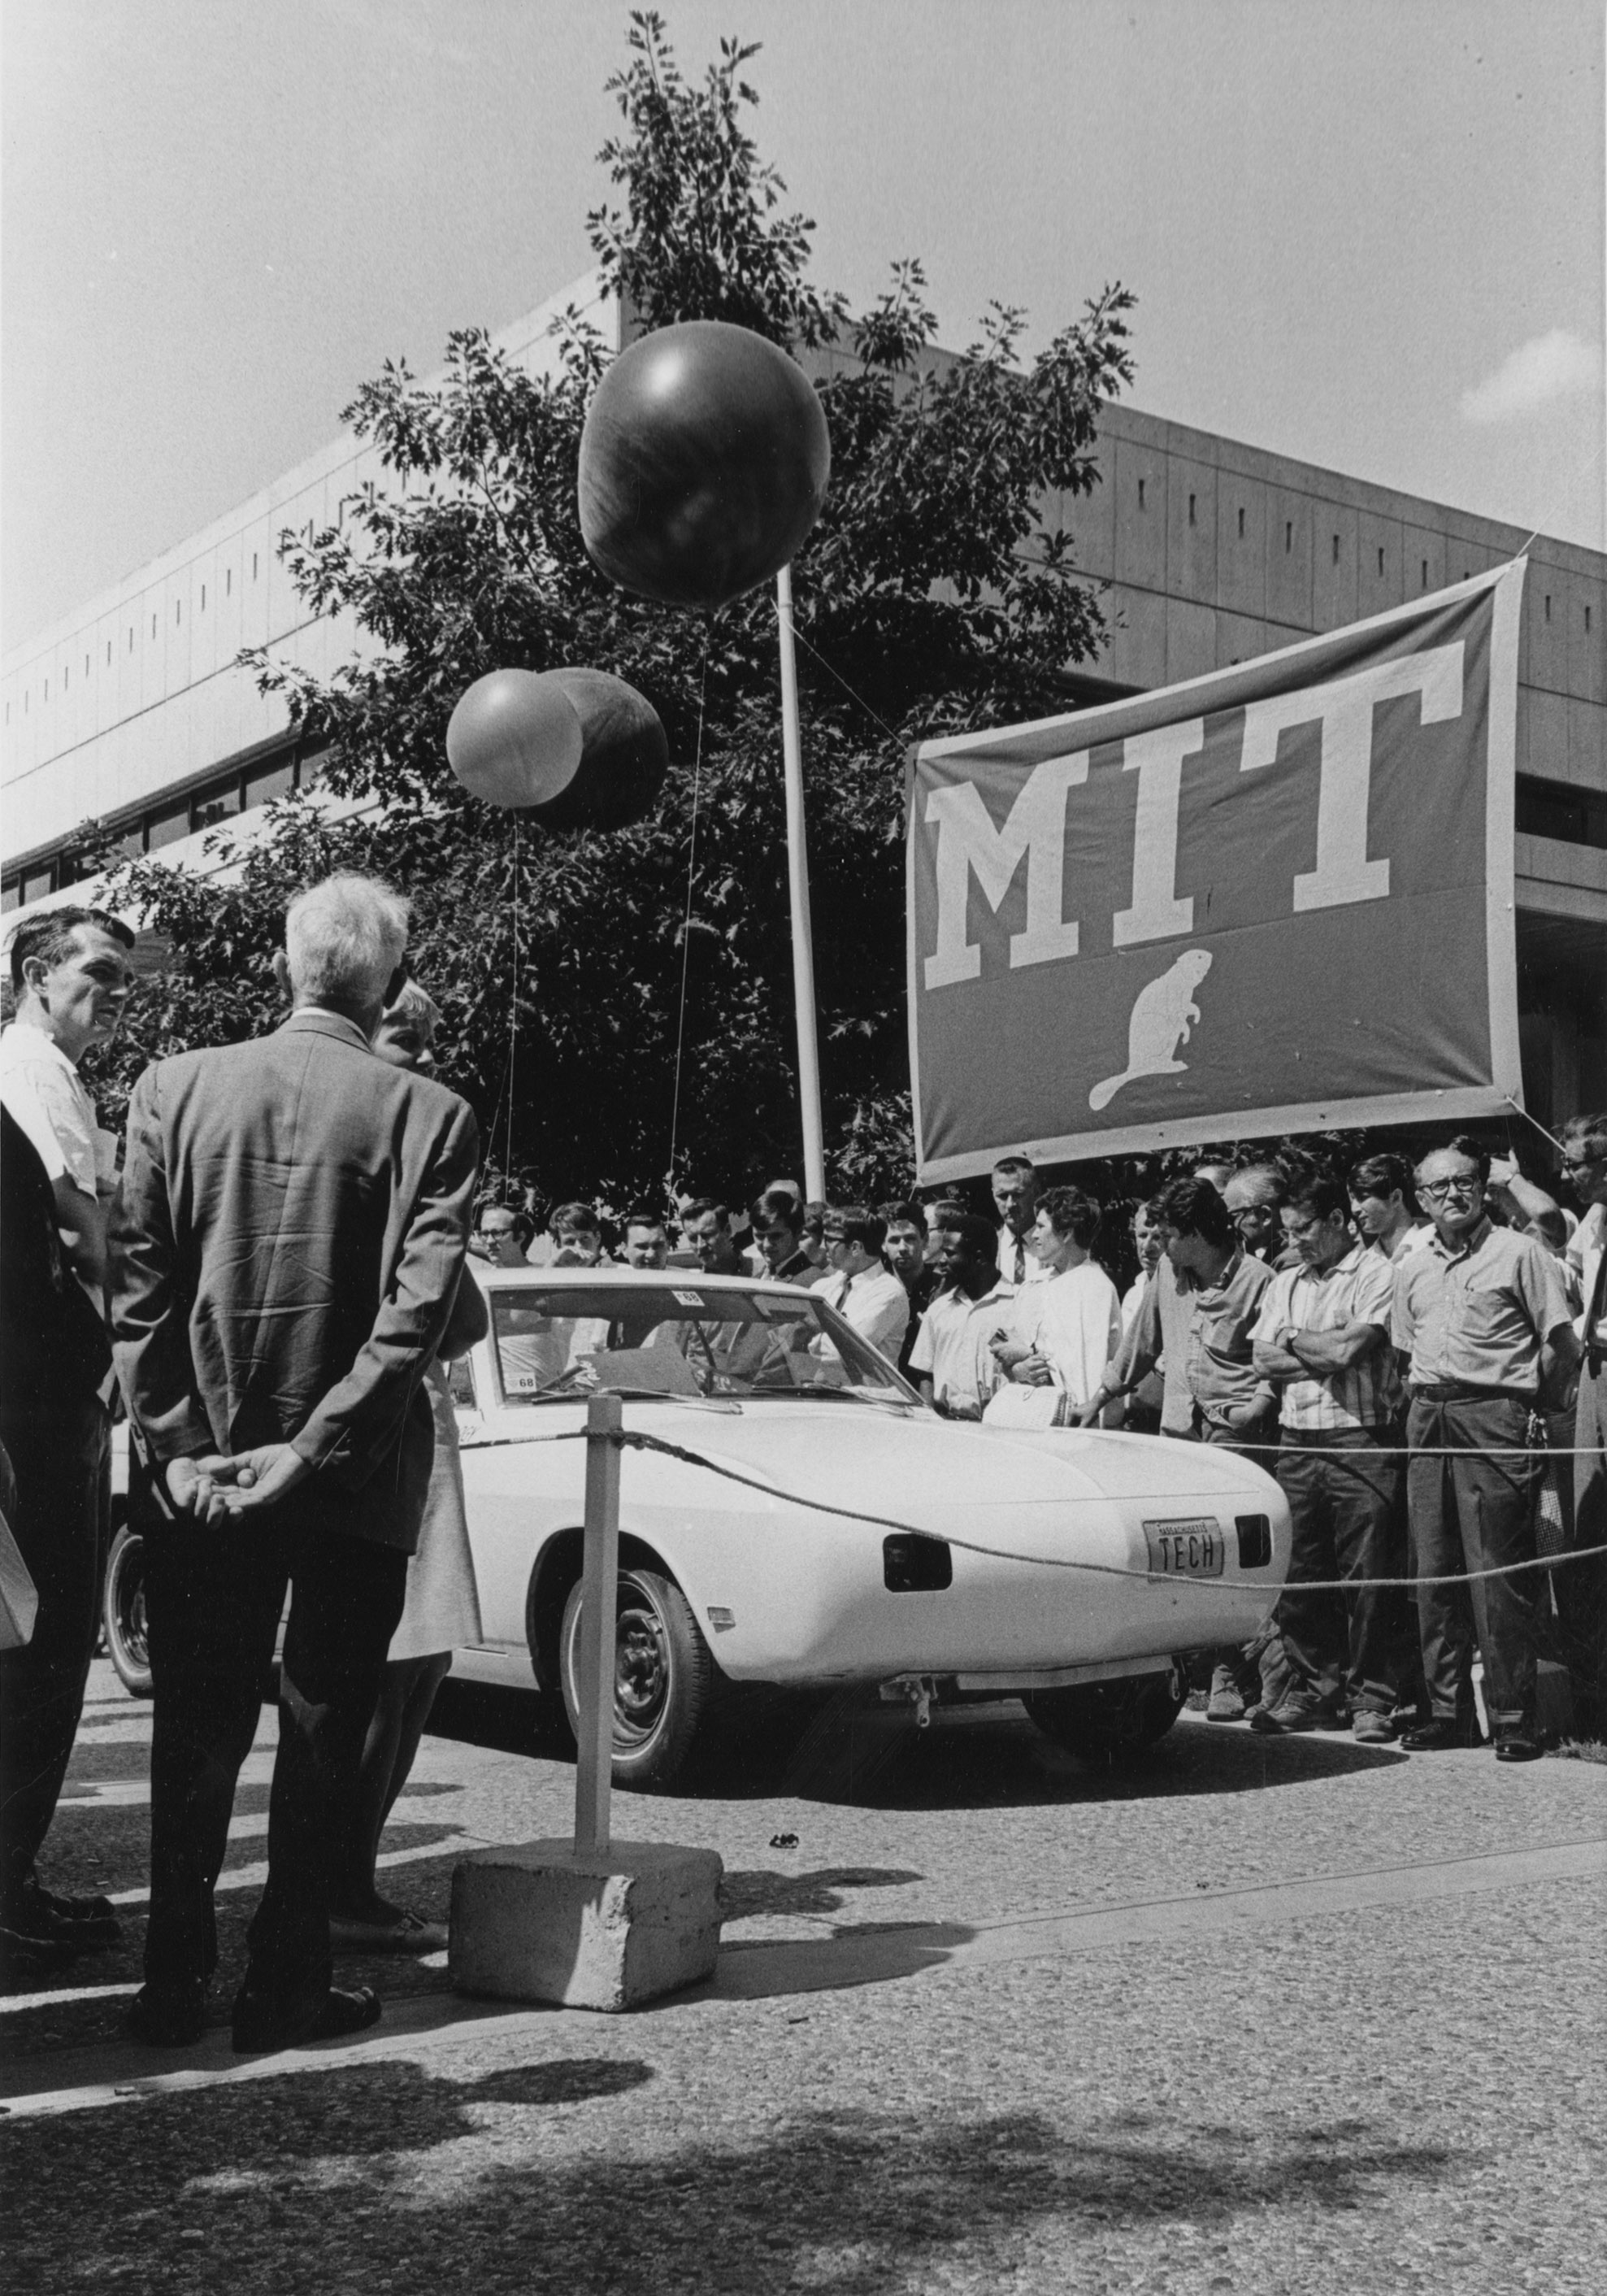 Electric car at MIT ceremony